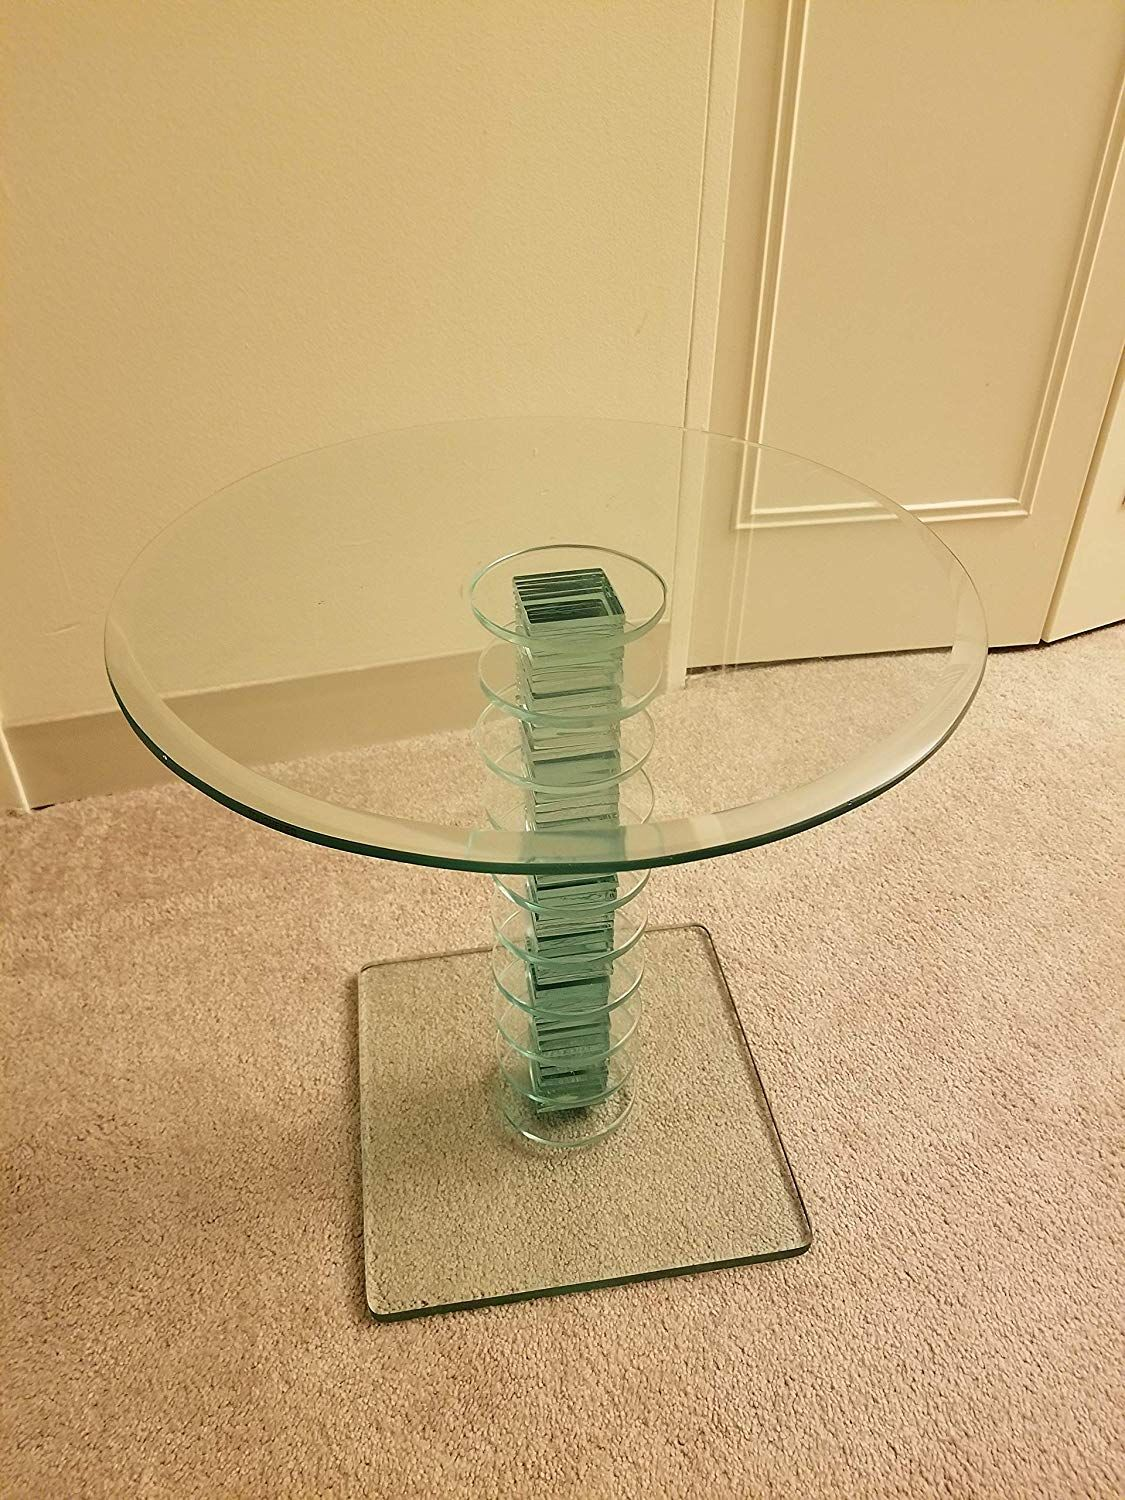 Amazon Com Glass Side Table Set Of 2 Tables Tower Design Kitchen Dining Glass Side Tables Tower Design Glass [ 1500 x 1125 Pixel ]